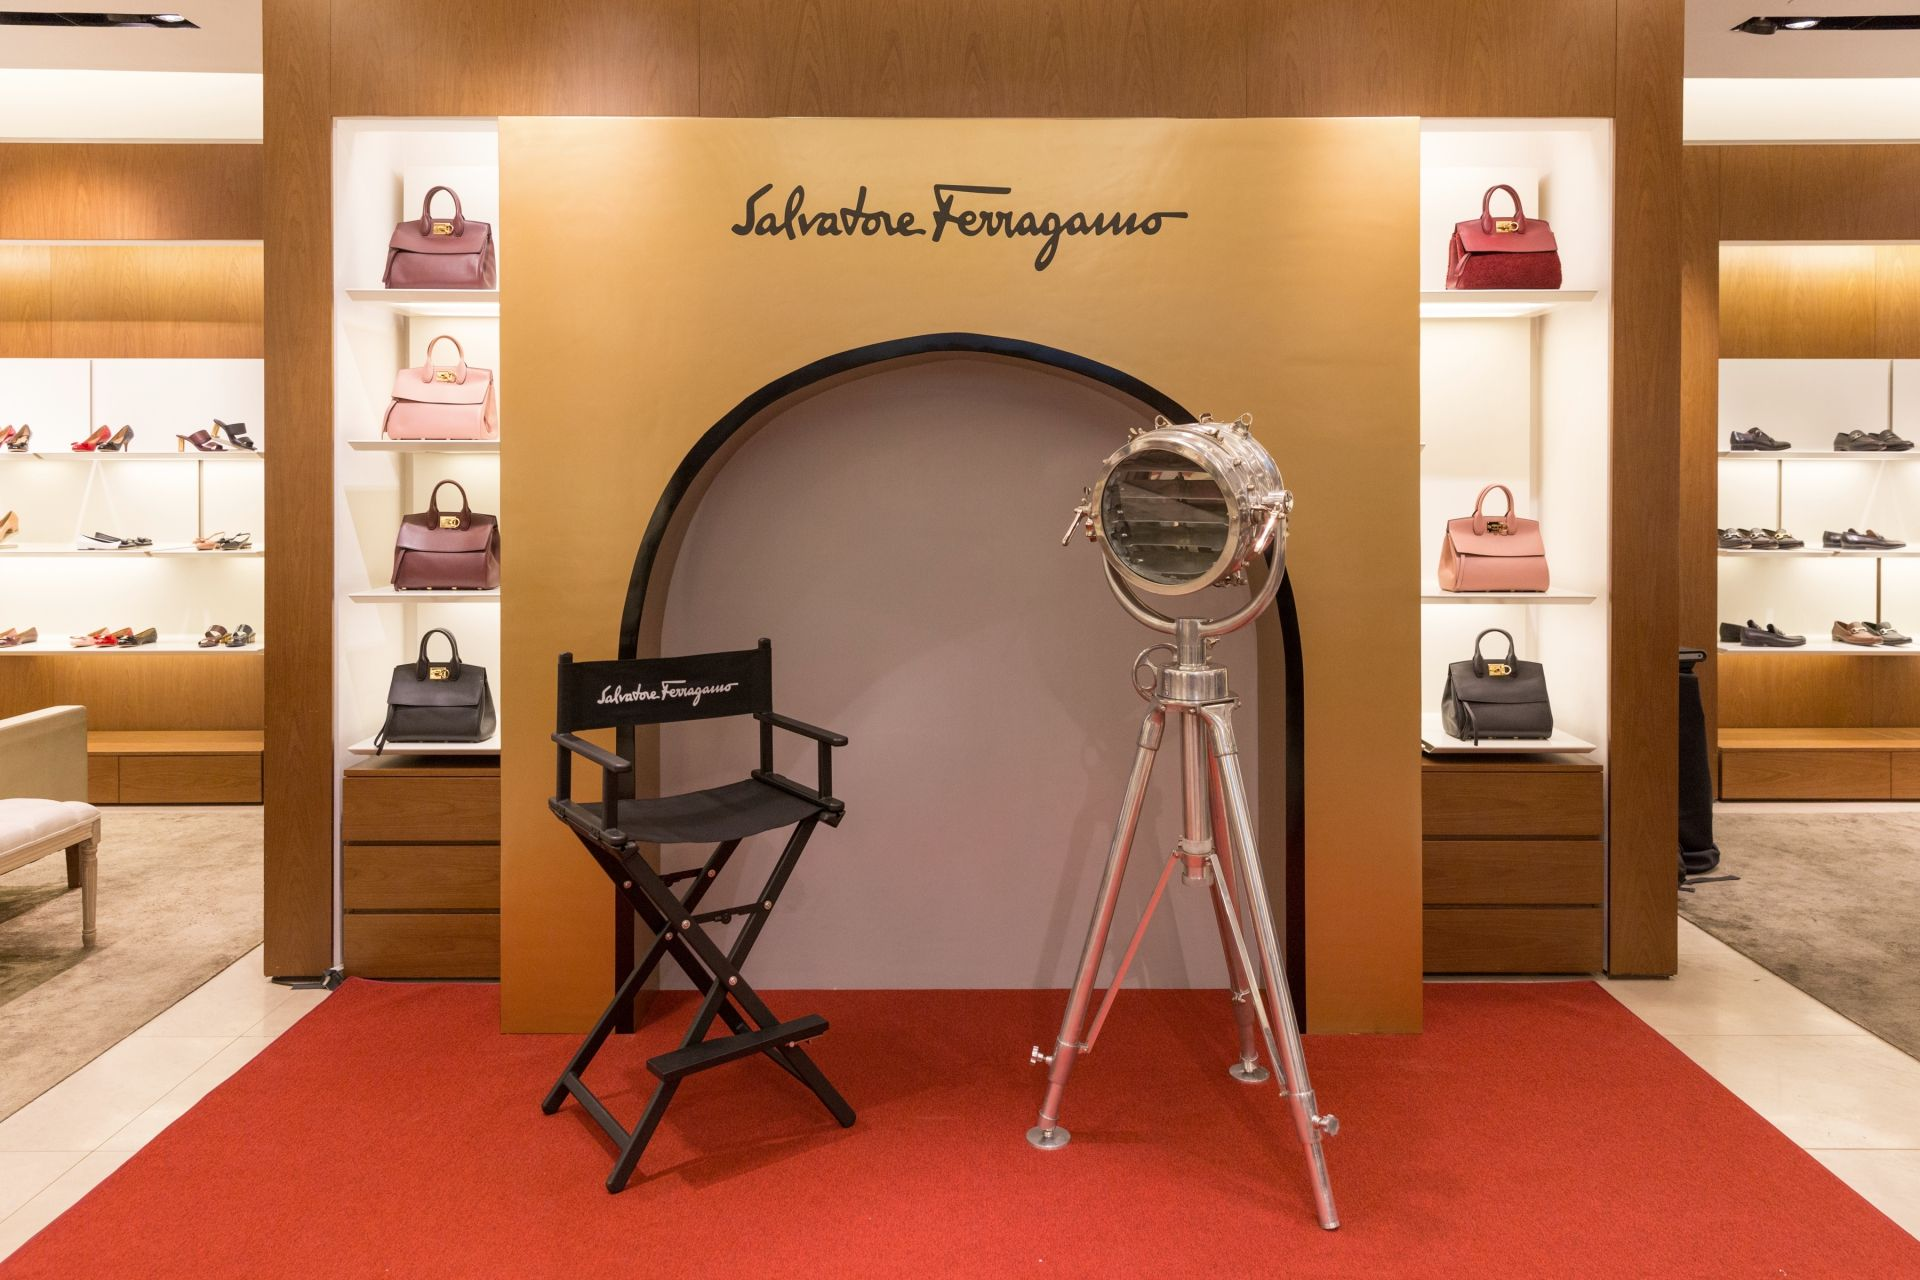 Salvatore Ferragamo's Studio Bag Has Made Its Entrance